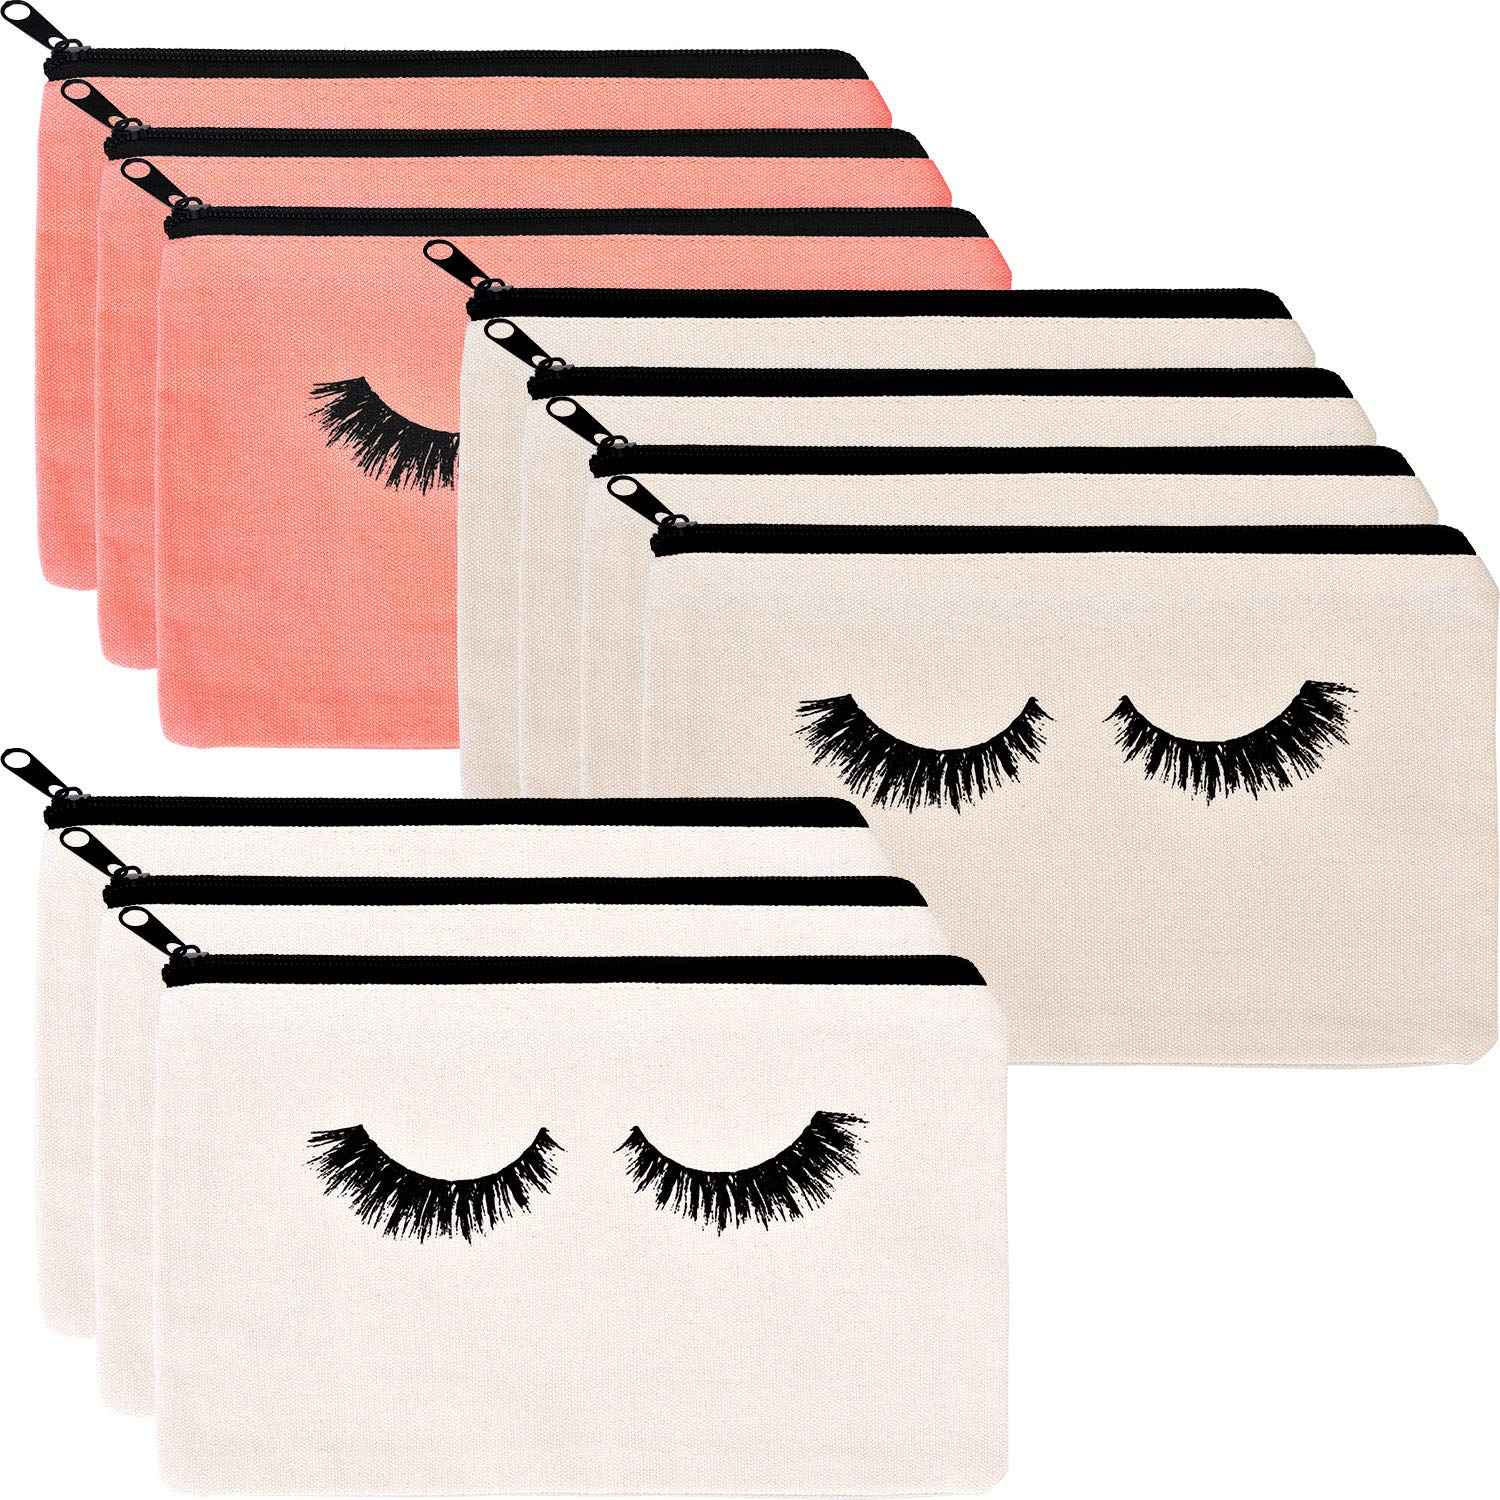 10 Pieces Eyelash Makeup Bags Cosmetic Bags Travel Make up Pouches with Zipper for Women Girls (White, Beige and Pink)